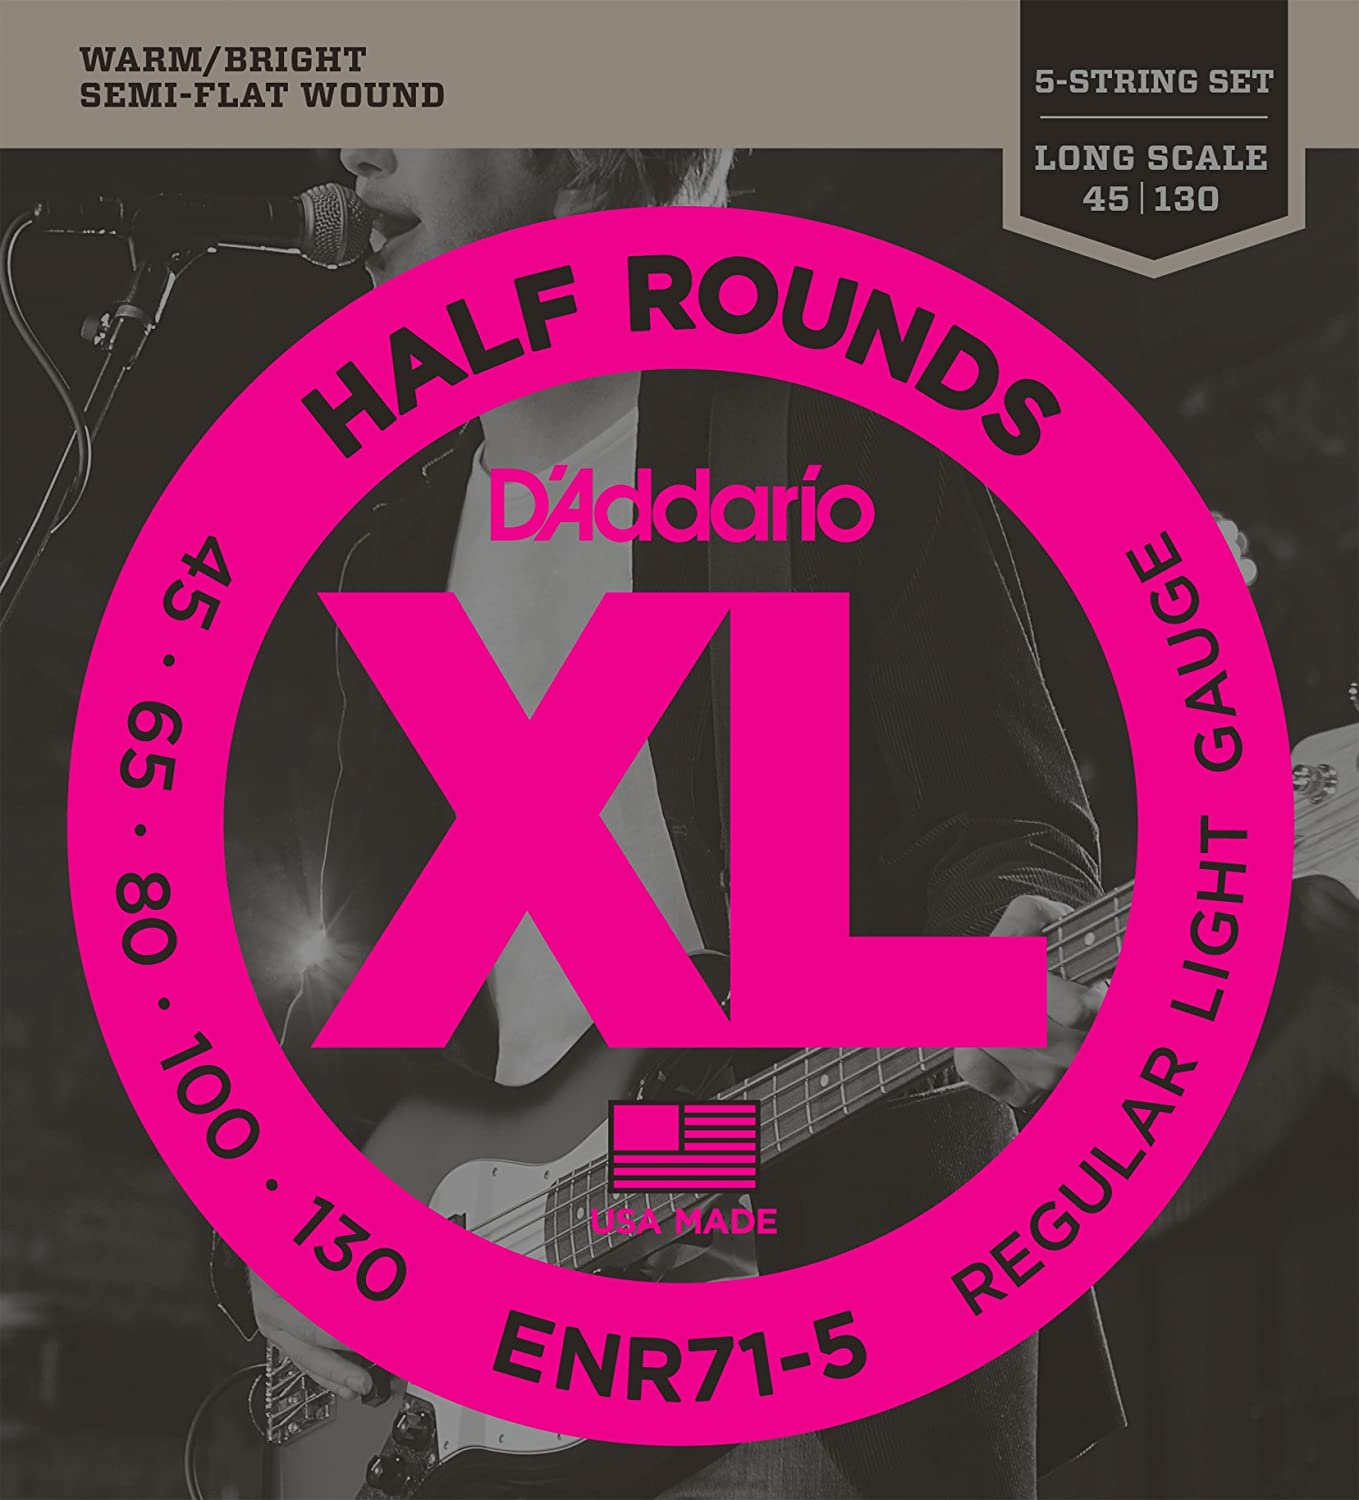 D'Addario ENR71-5 Half Round 5-String Bass Guitar Strings, Regular Light, 45-130, Long Scale D'Addario &Co. Inc